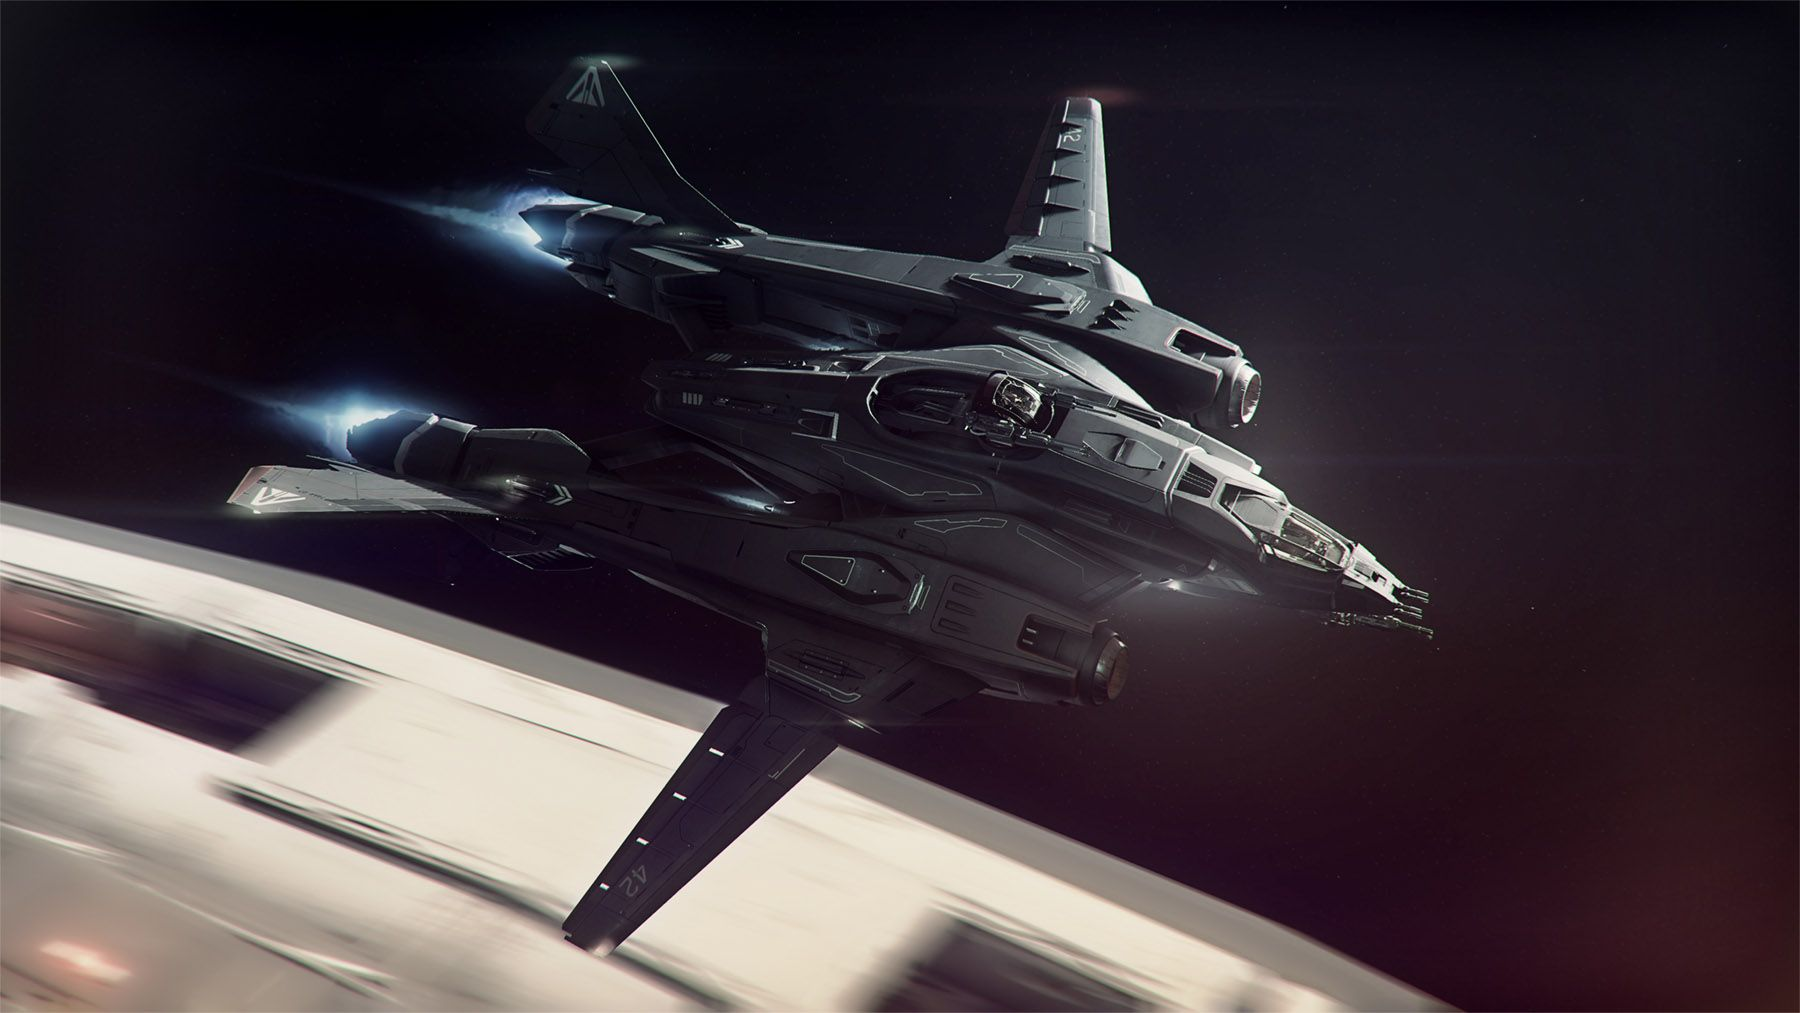 Black themed spaceship conceptual artwork and wallpapers 1 design - Spaceship Design Concept Ships Concept Art